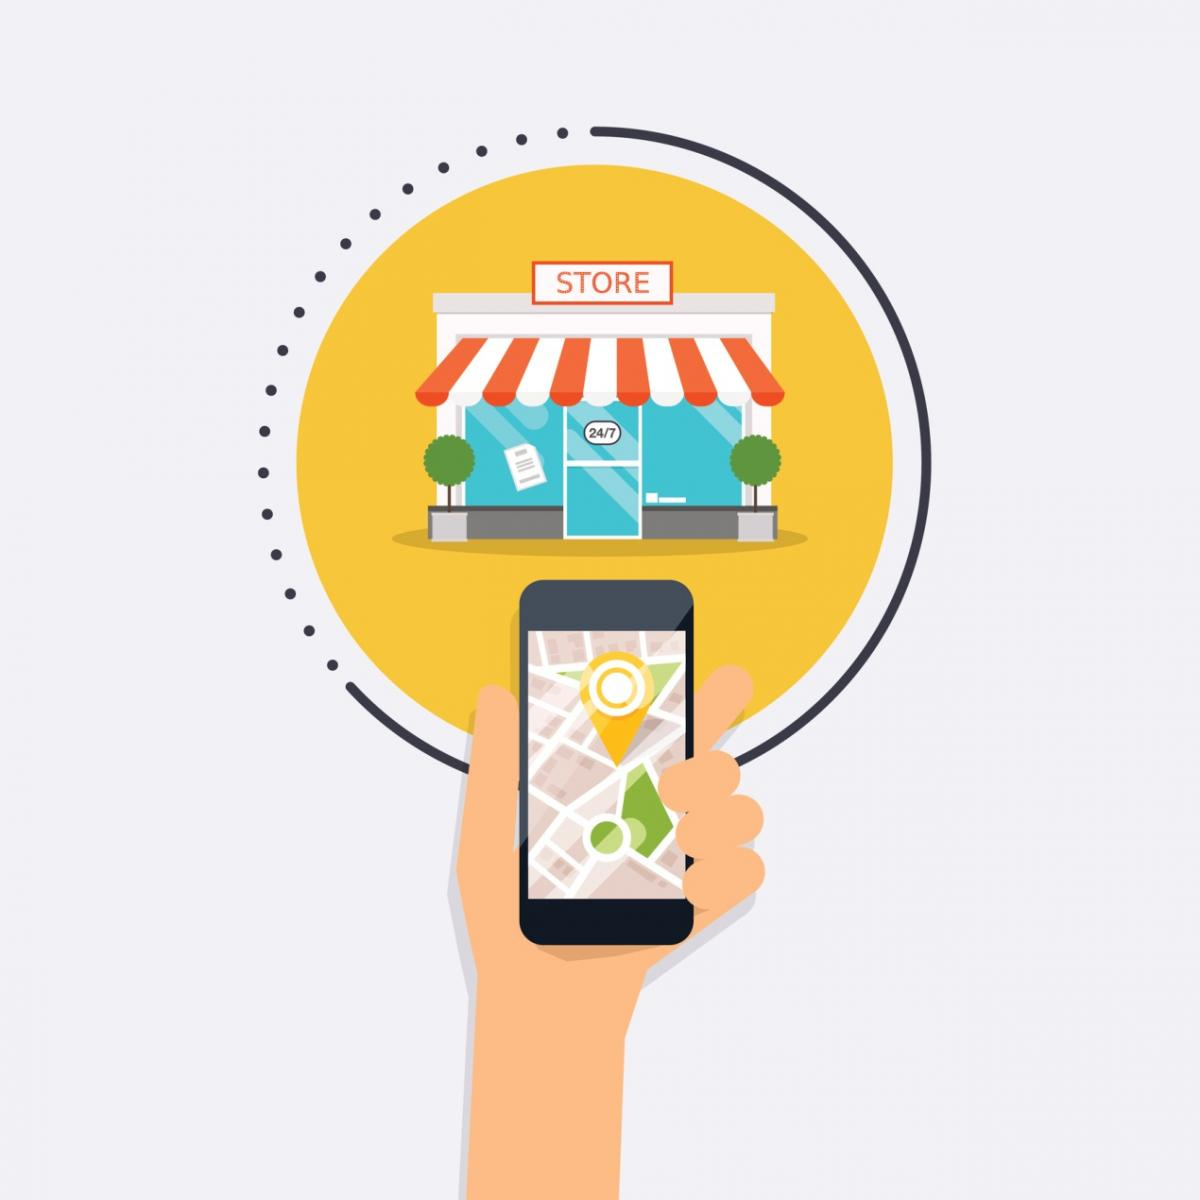 location-based retail marketing